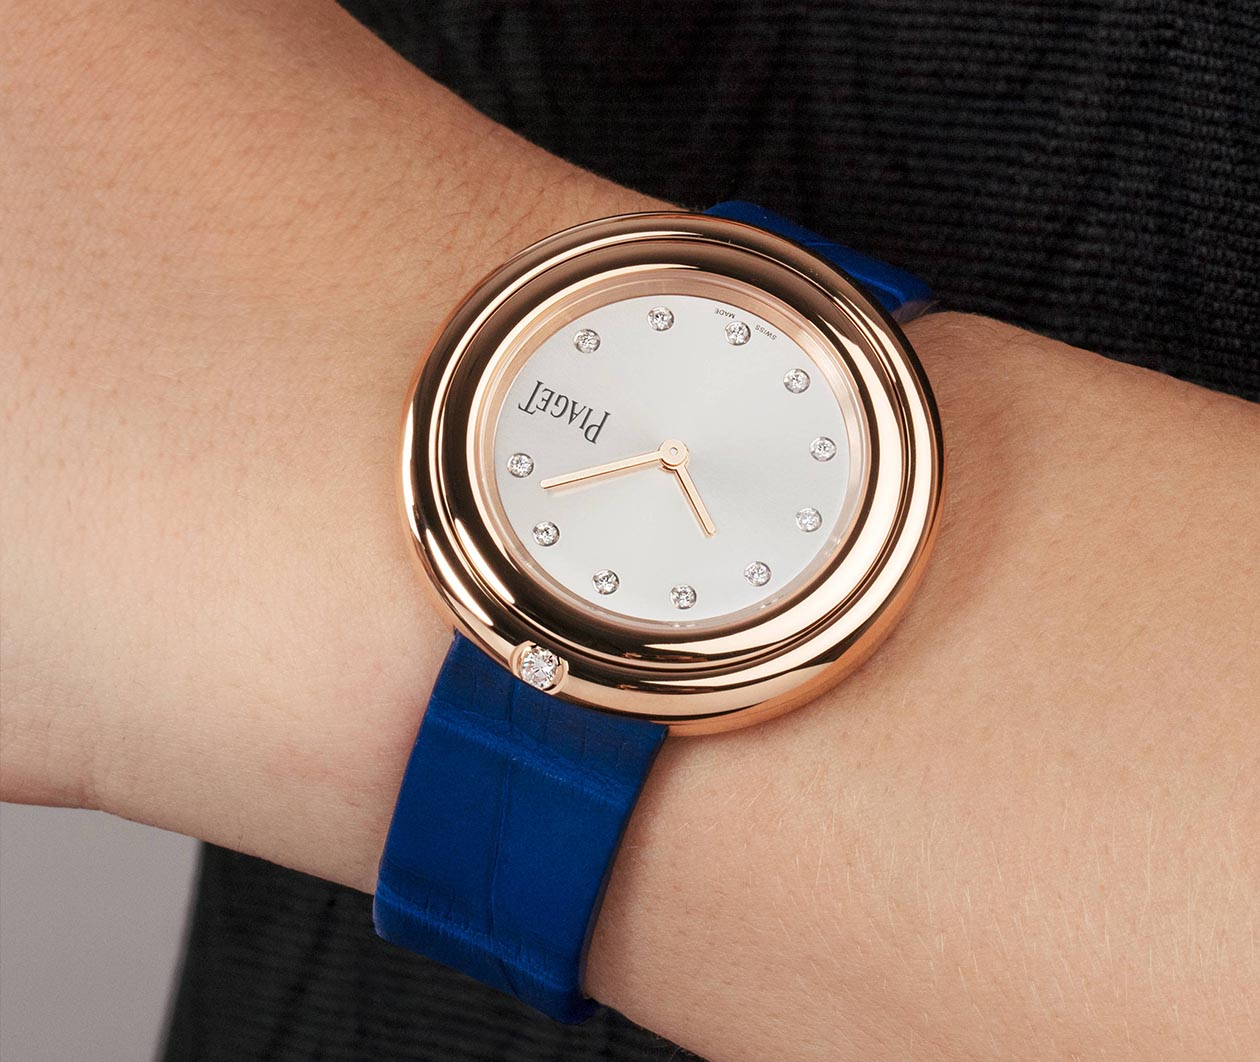 Piaget Possession watch G0A43091 Carousel 2 FINAL